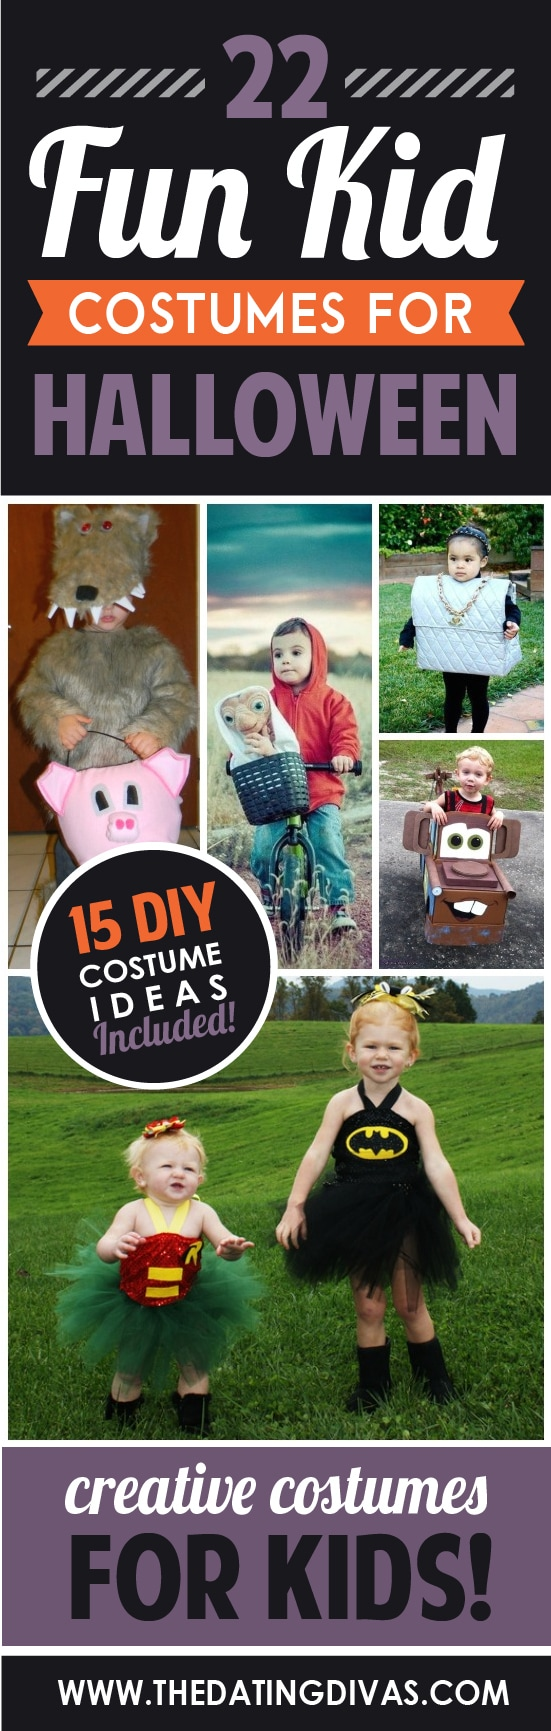 22 fun kid halloween costumes